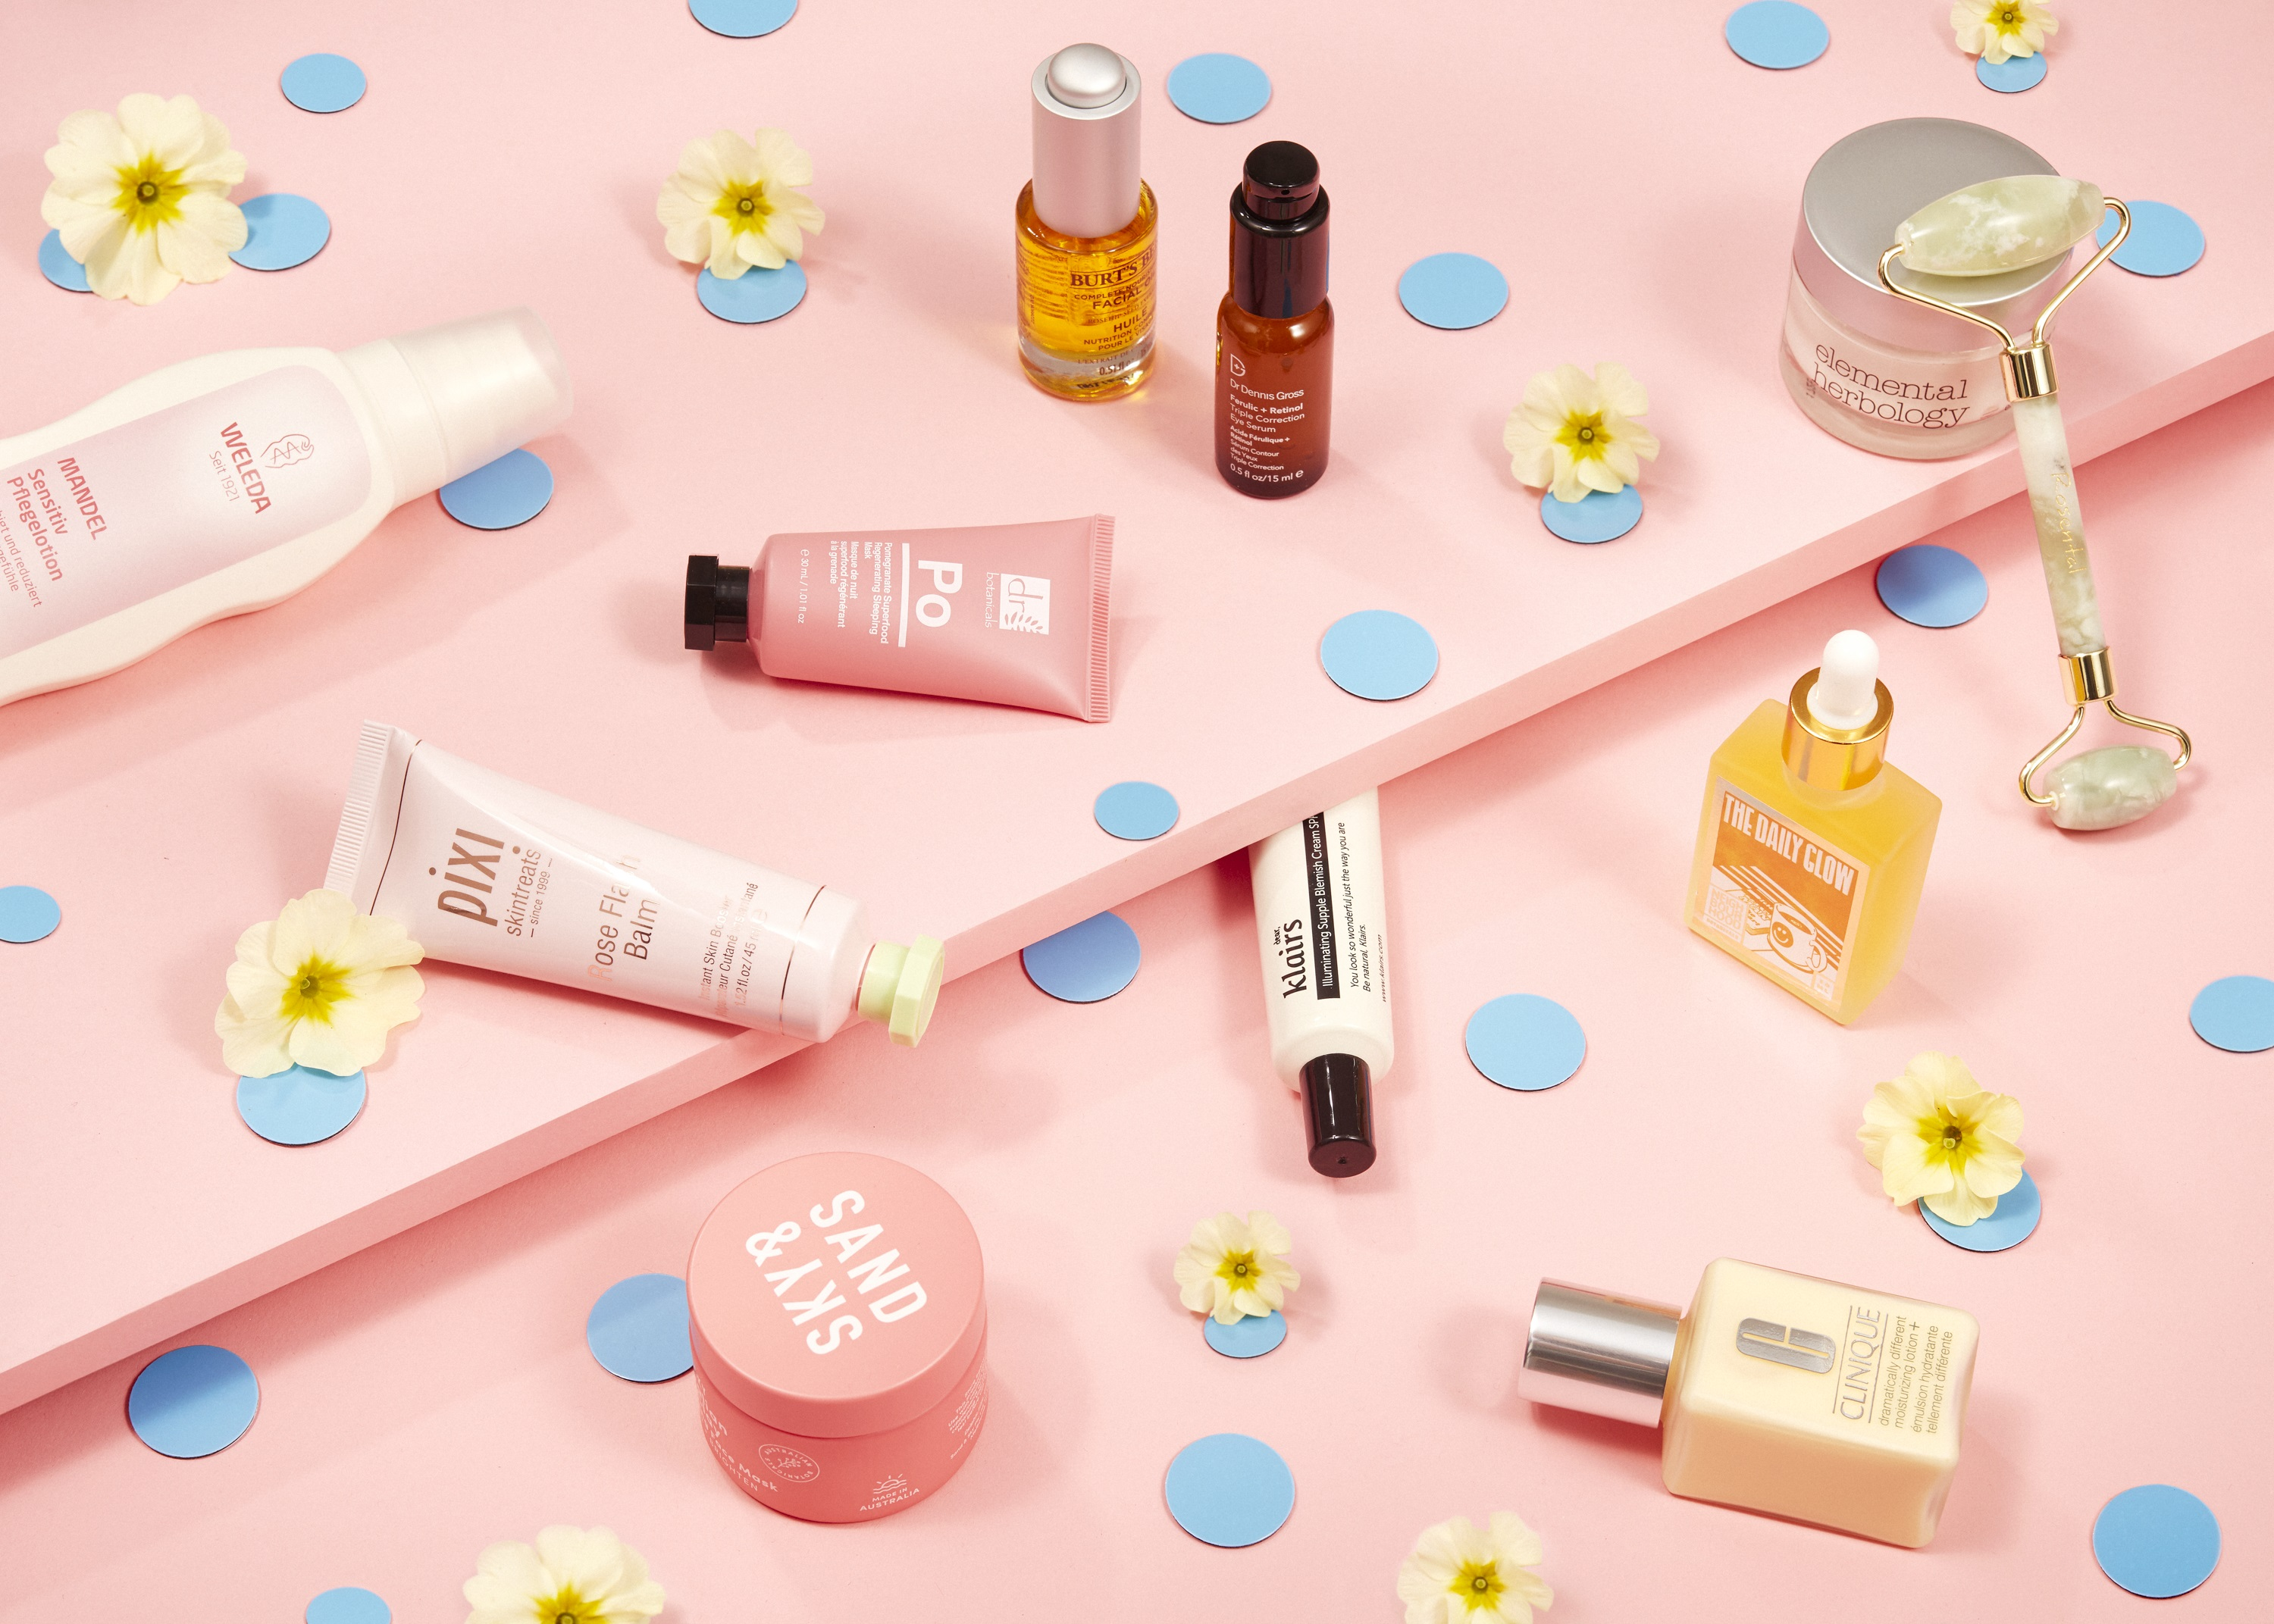 face copy - ZALANDO LANCEERT BEAUTY ASSORTIMENT